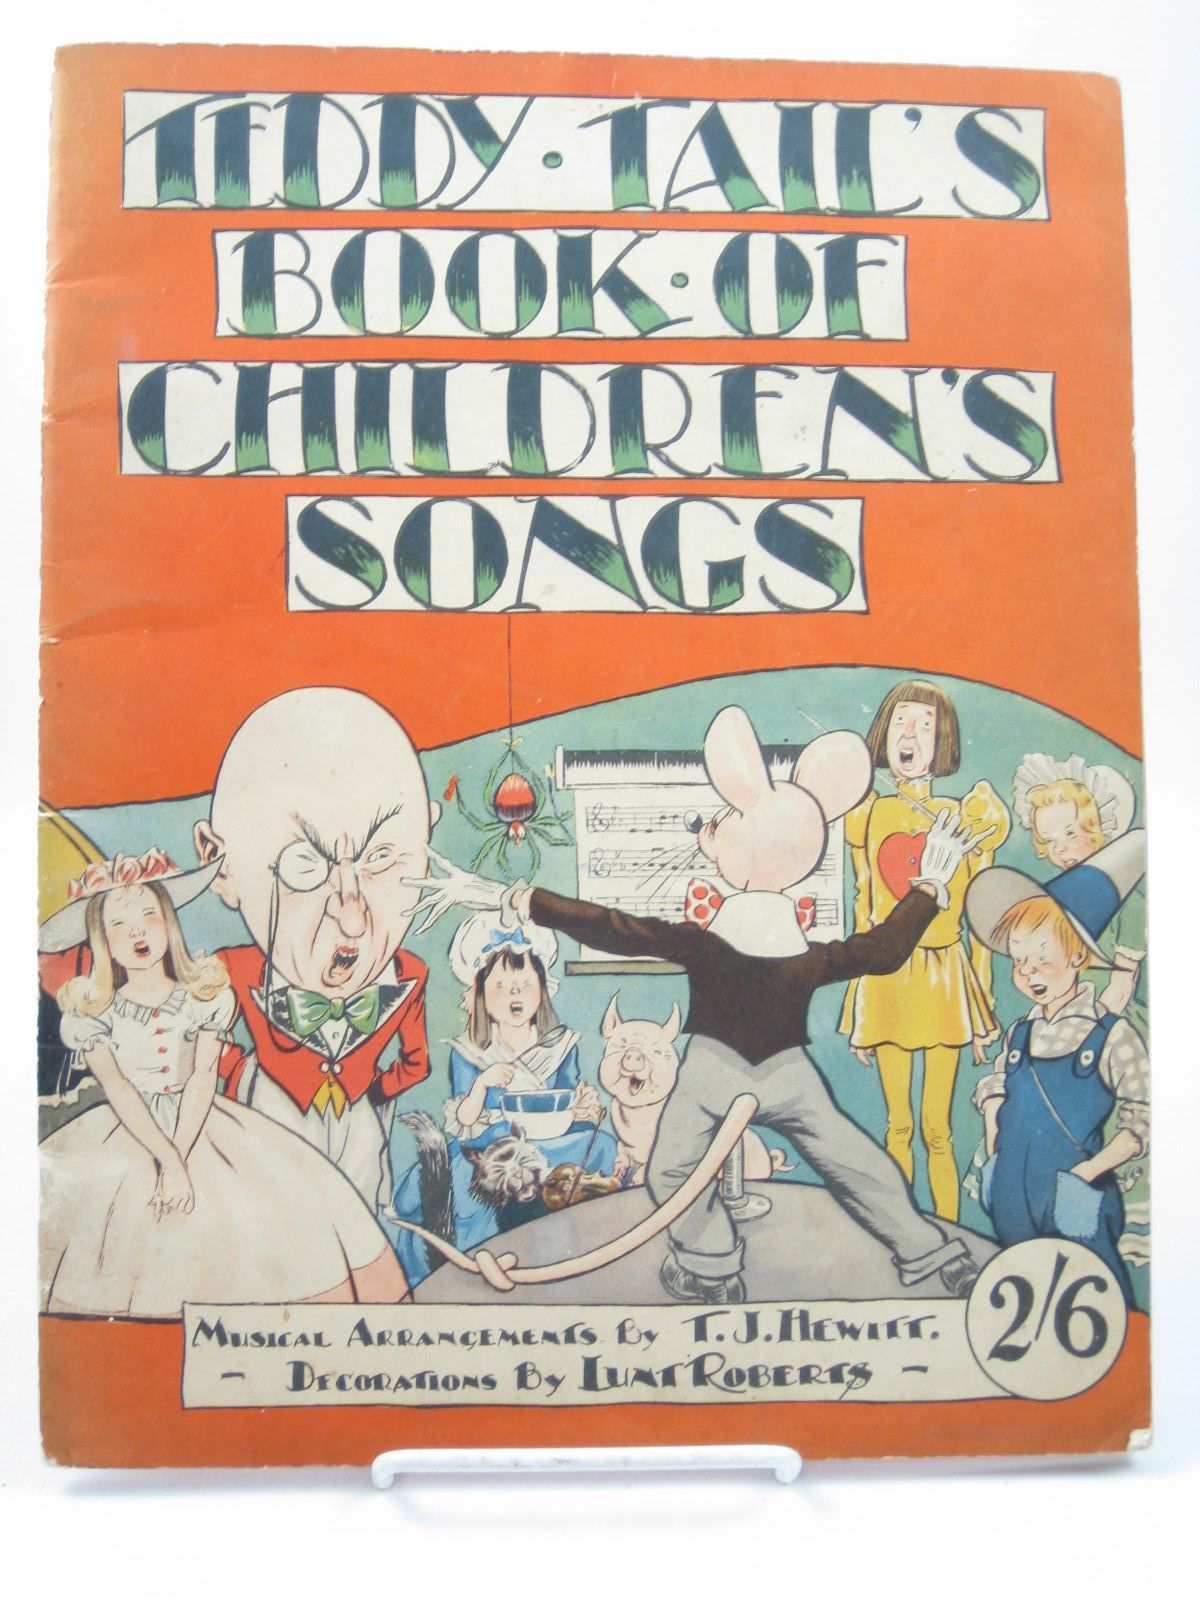 Photo of TEDDY TAIL'S BOOK OF CHILDREN'S SONGS written by Hewitt, T.J. illustrated by Roberts, Lunt published by Ken Publications (STOCK CODE: 1312188)  for sale by Stella & Rose's Books